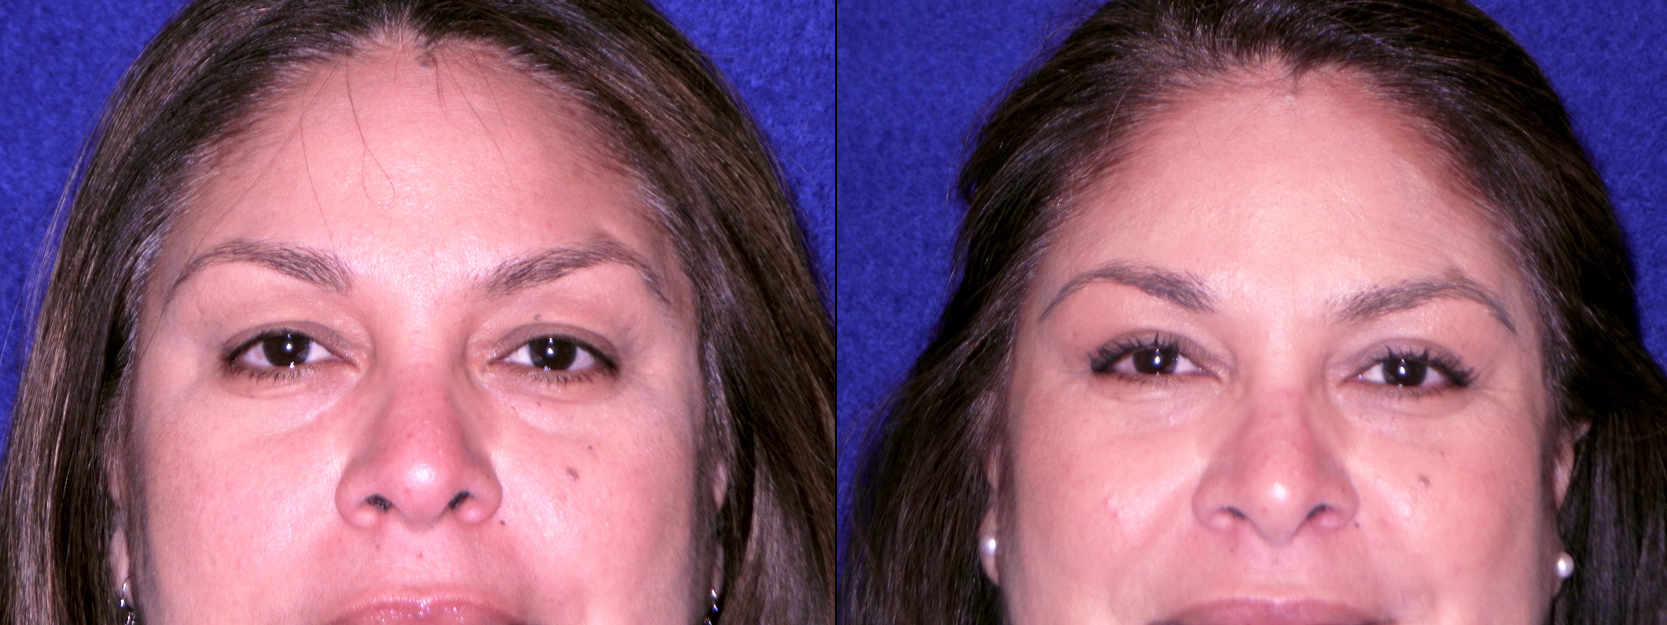 Frontal View Close Up - Upper Blepharoplasty